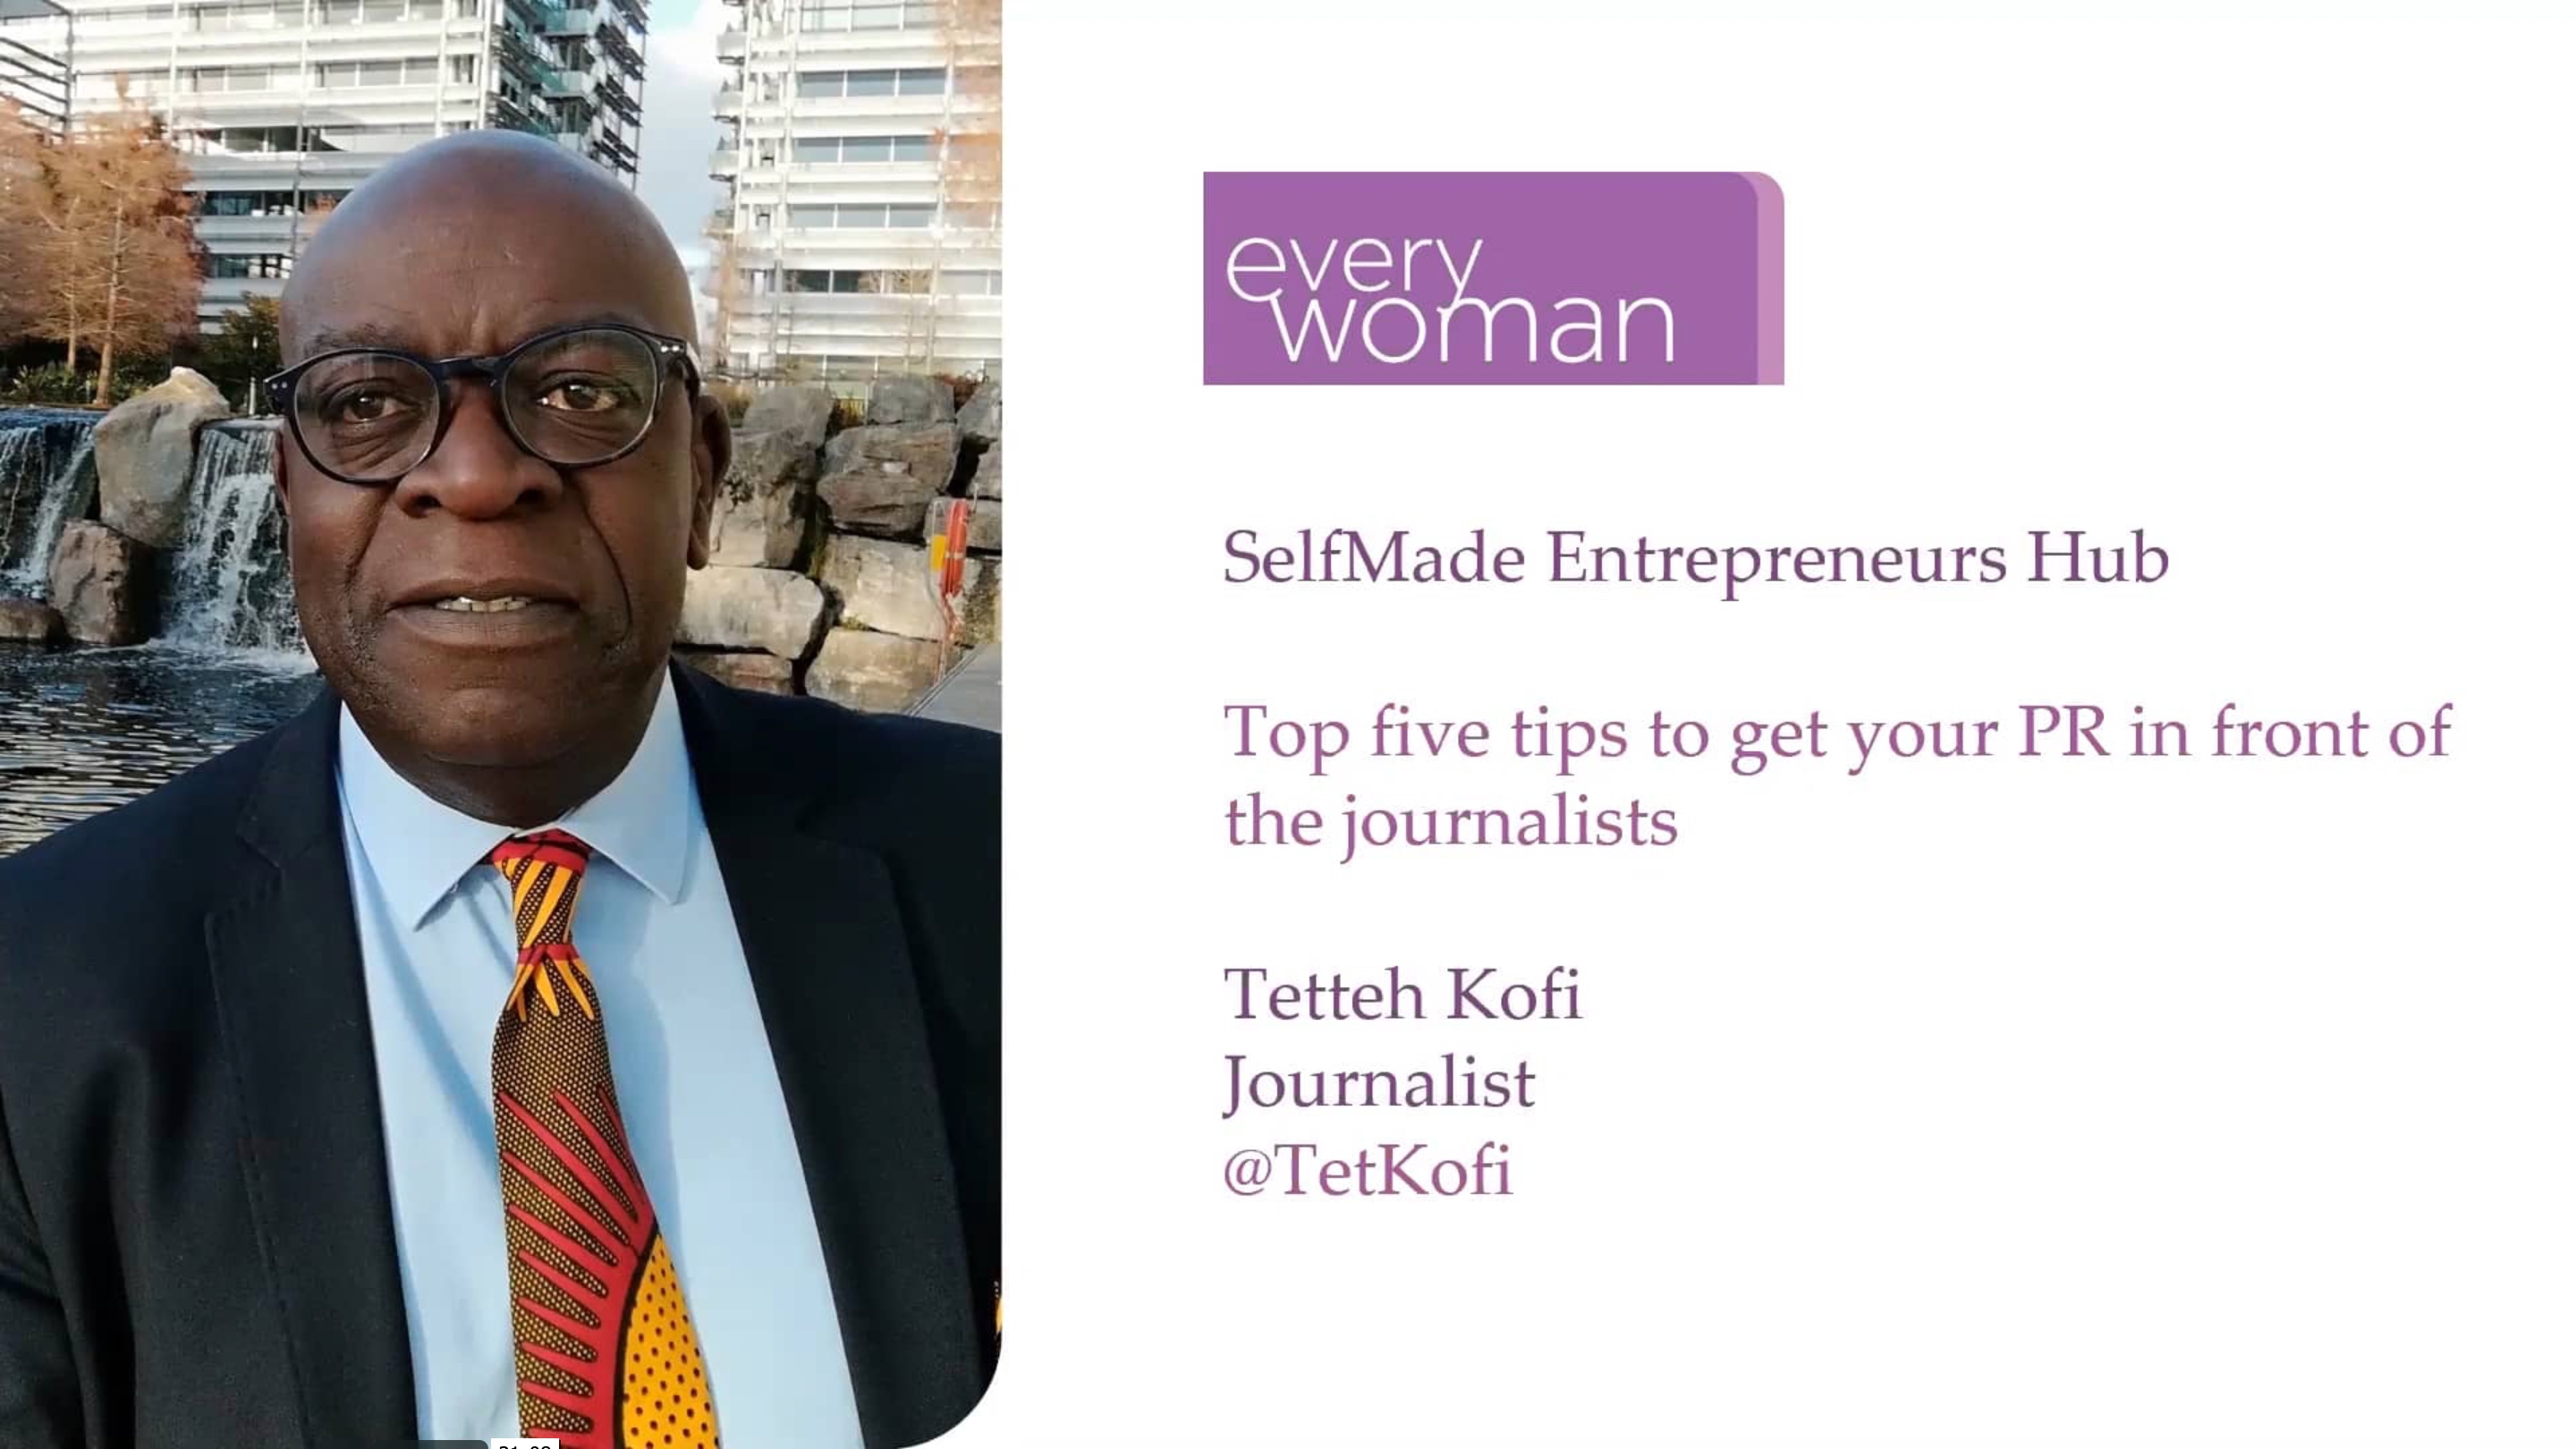 Top five tips to get your PR in front of journalists with Tetteh Kofi